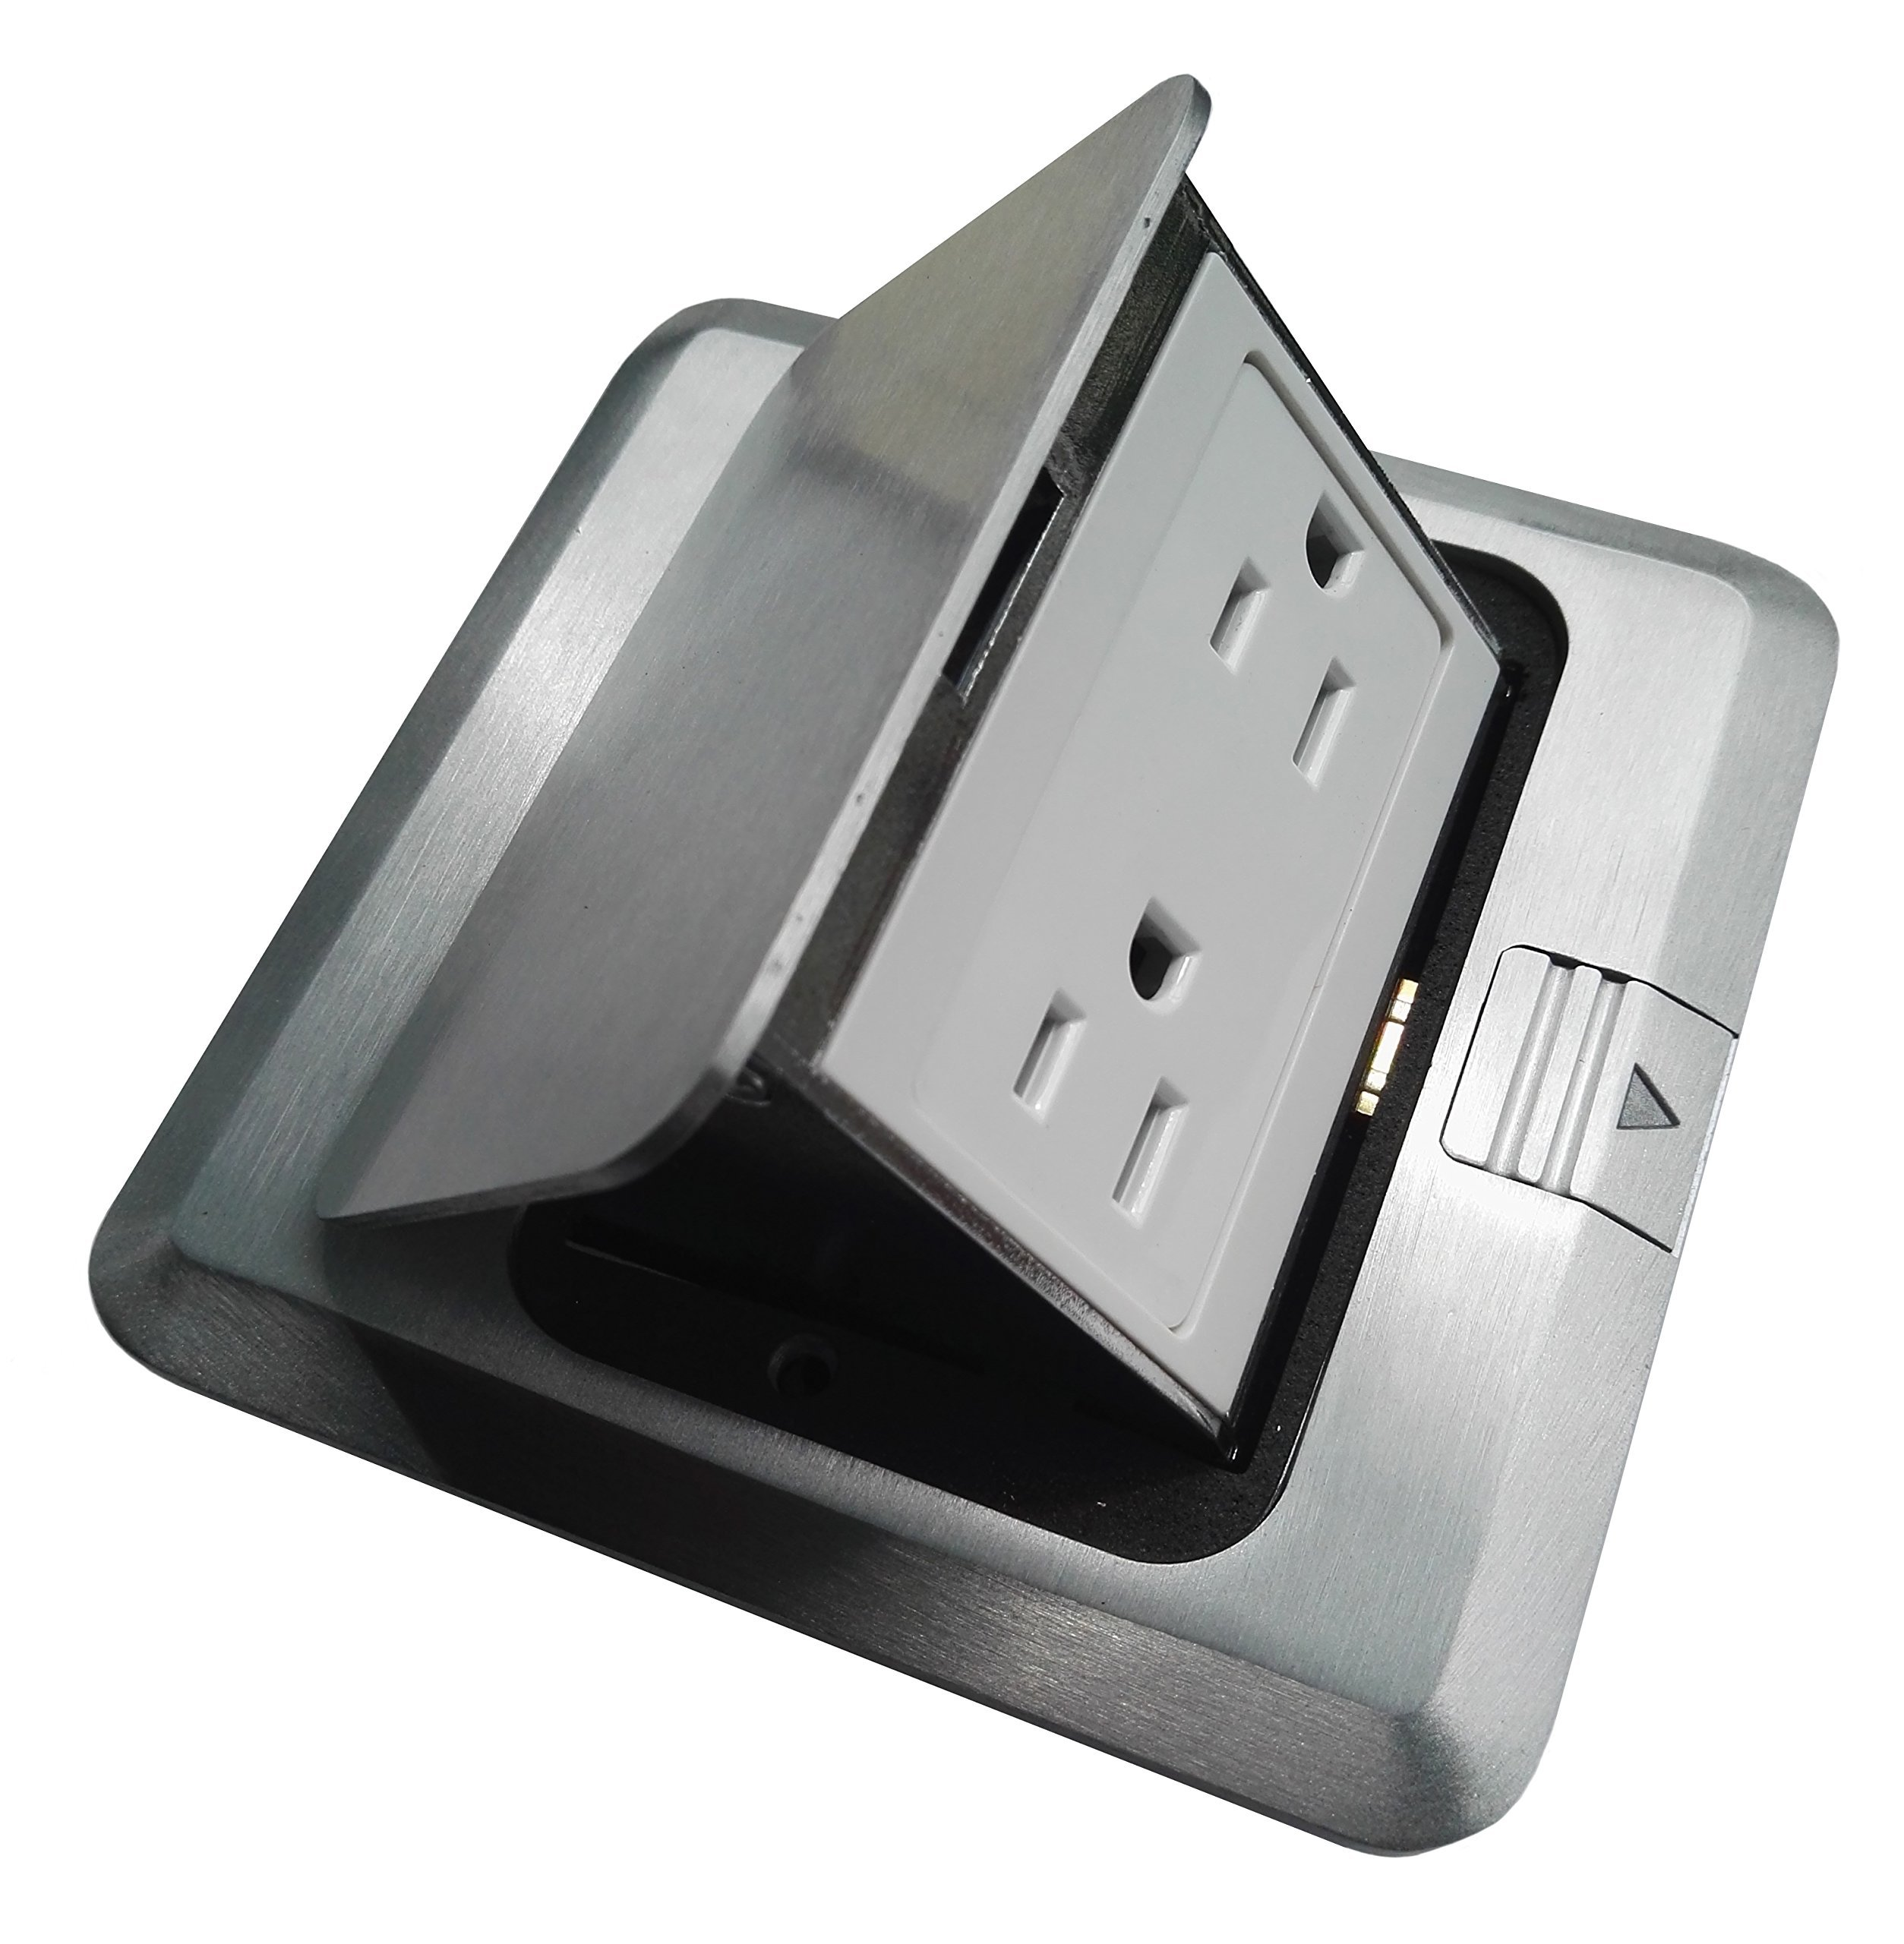 Pop Up Floor Box Countertop Box w/15A with Duplex Receptacle - Brushed-Stainless Finish by Lhfacc (Image #1)